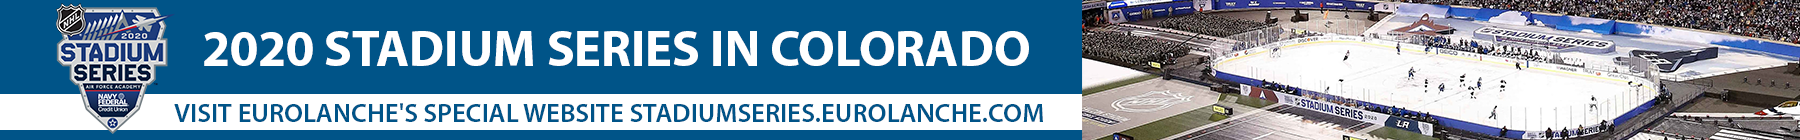 2020 Stadium Series in Colorado - by Eurolanche - banner